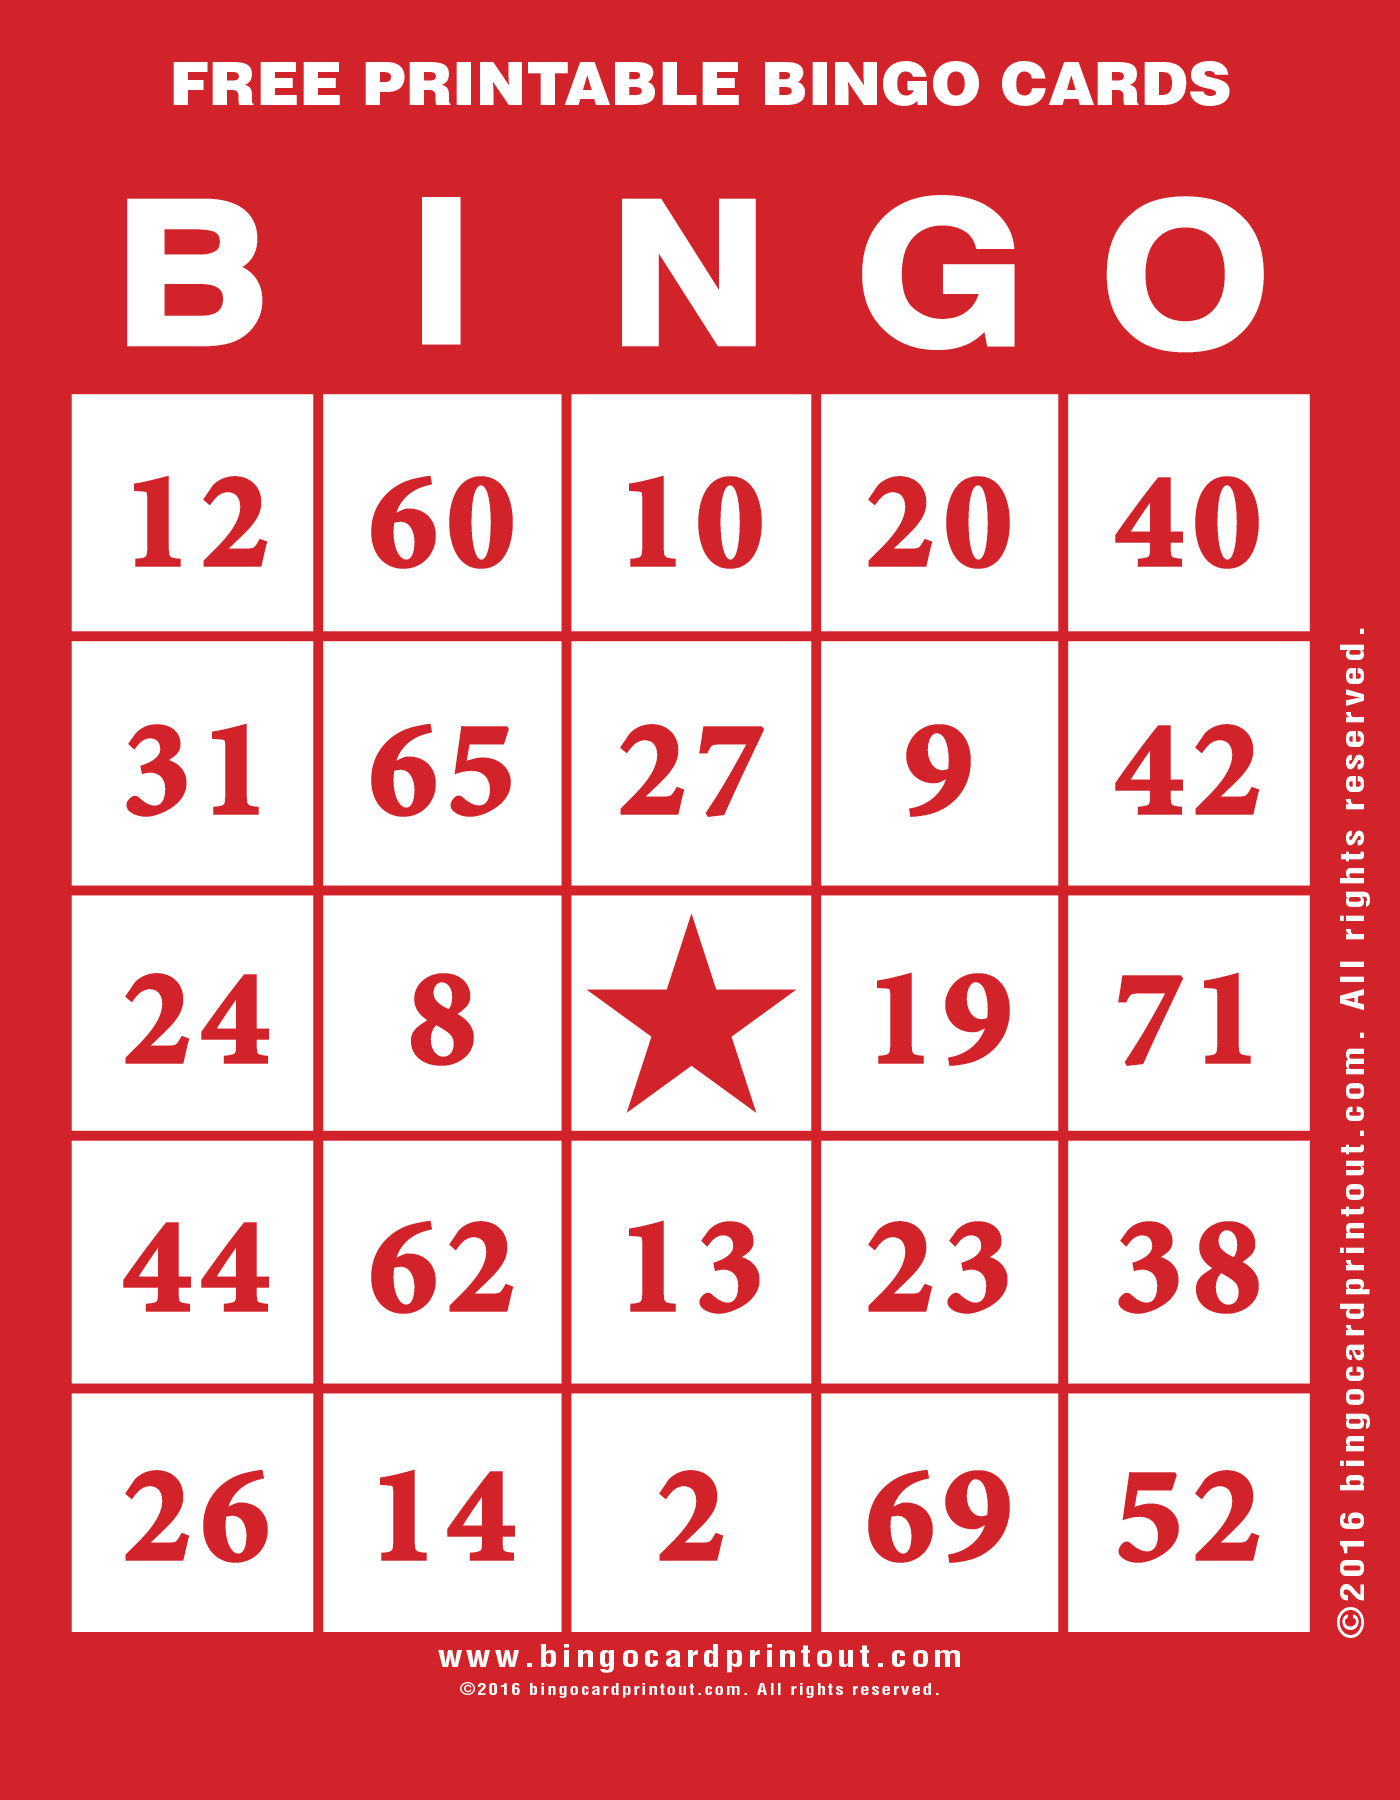 Printable Bingo Cards from BingoCardPrintout.com